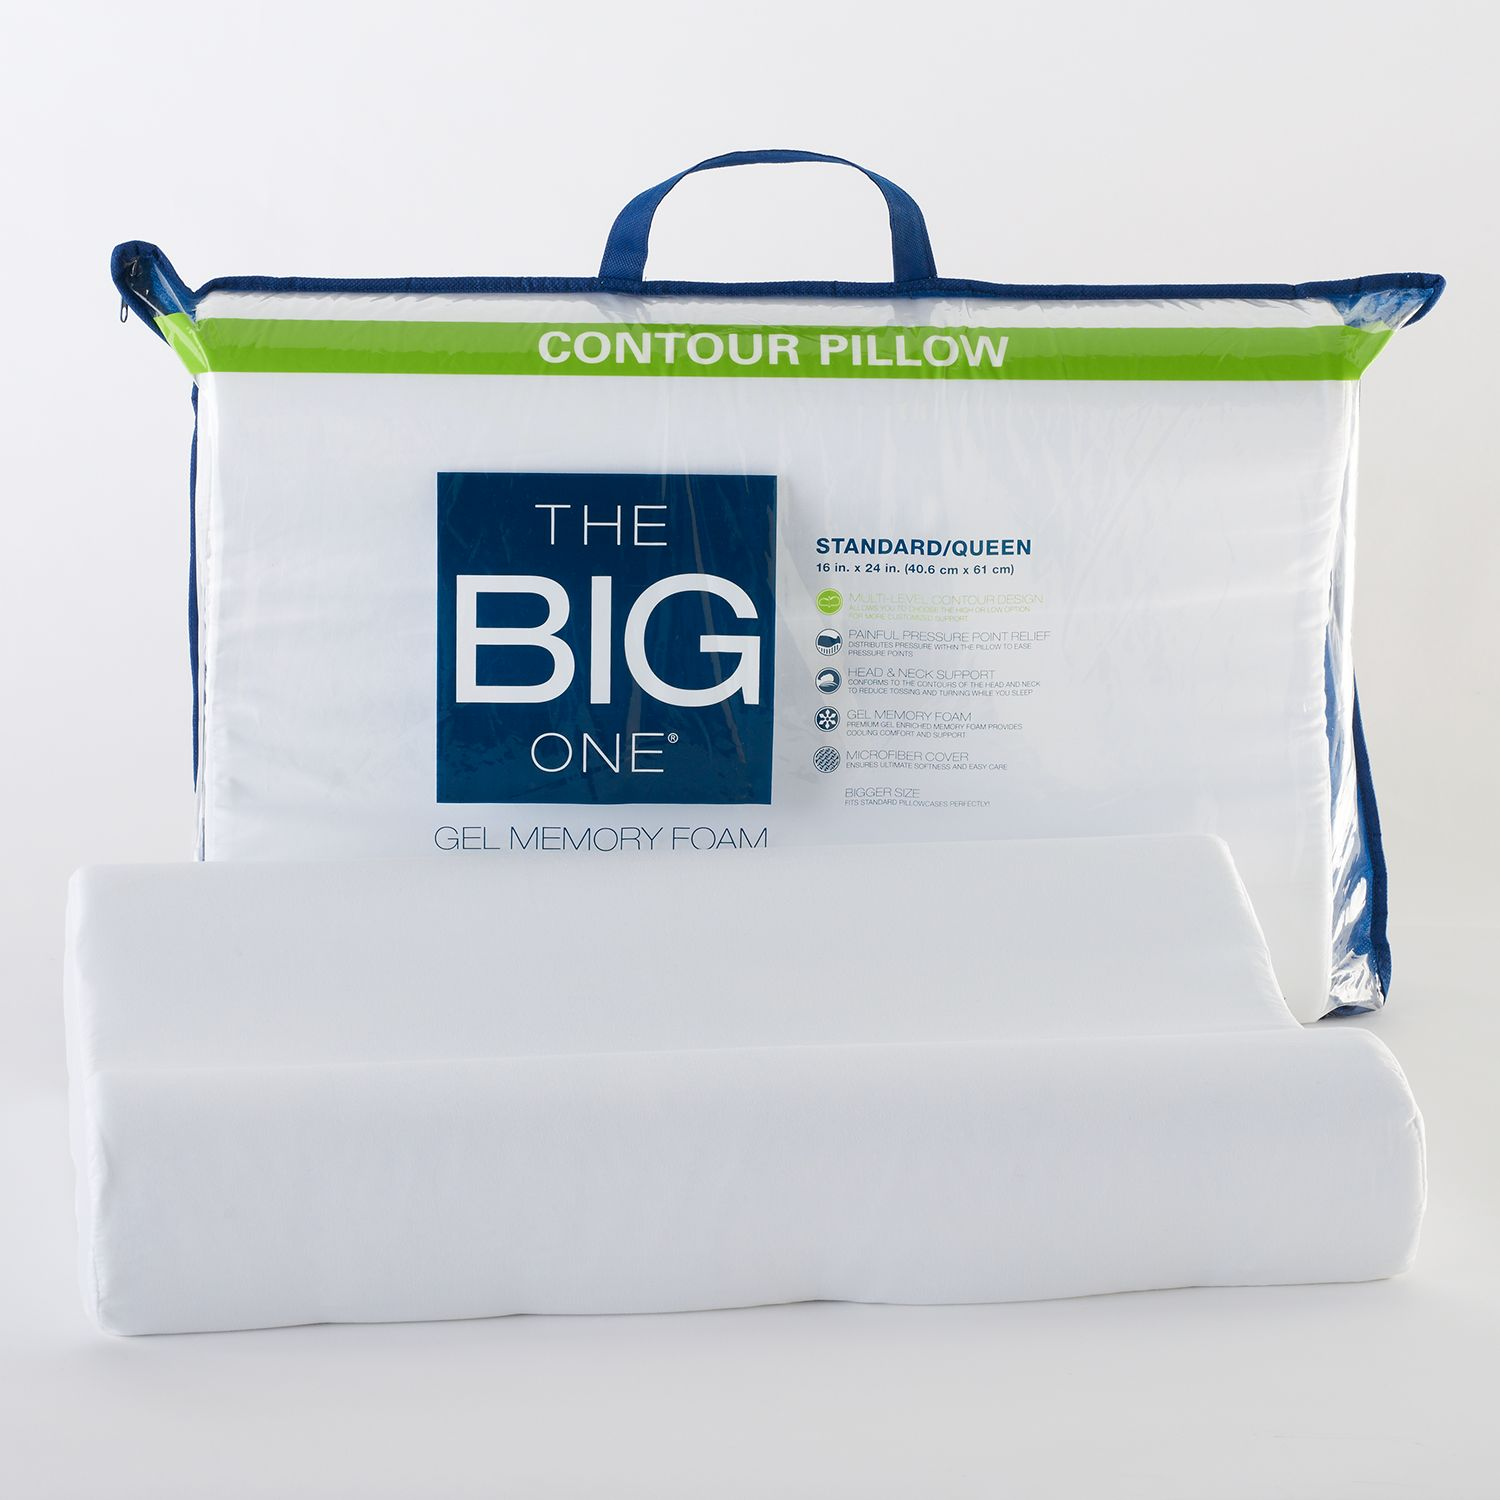 the big one gel memory foam contour pillow - Tempurpedic Pillows